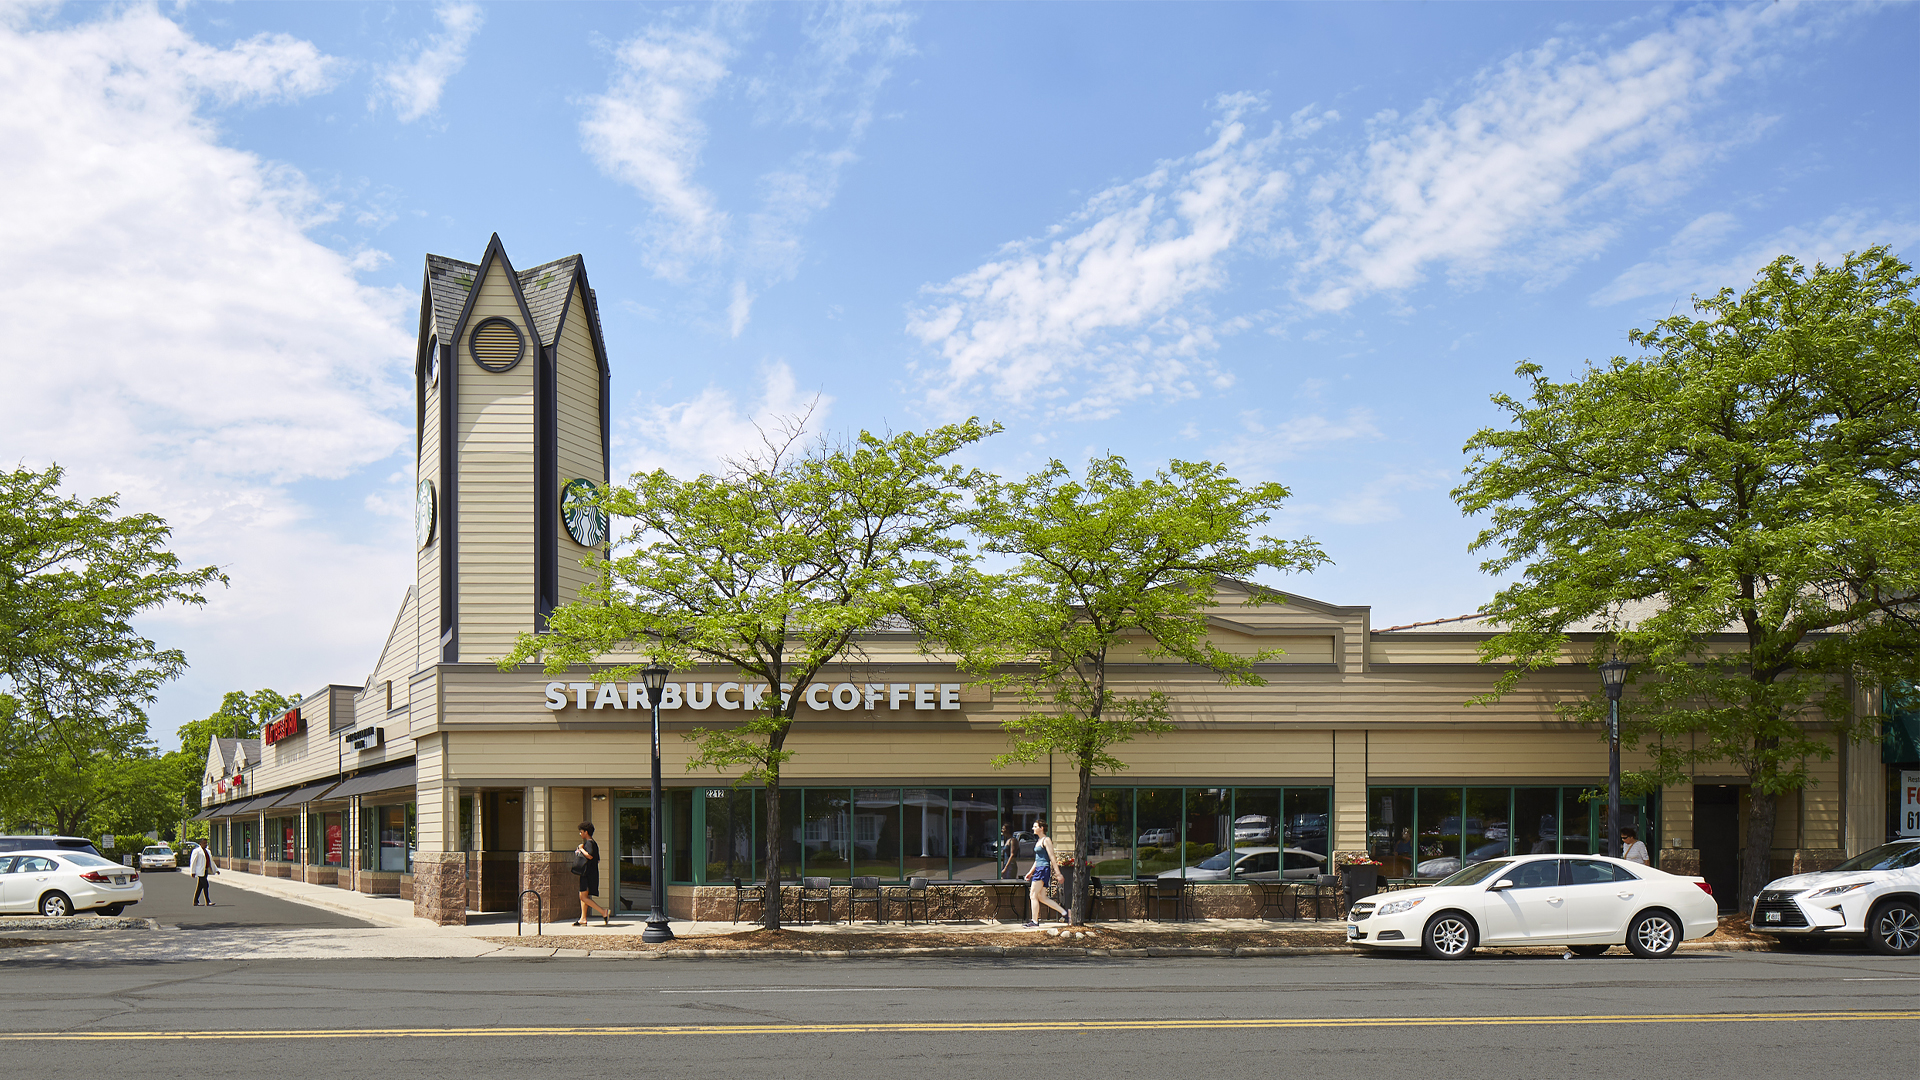 Kenwood Crossing Retail Shopping Center Minneapolis MN exterior view featuring Starbucks Coffee